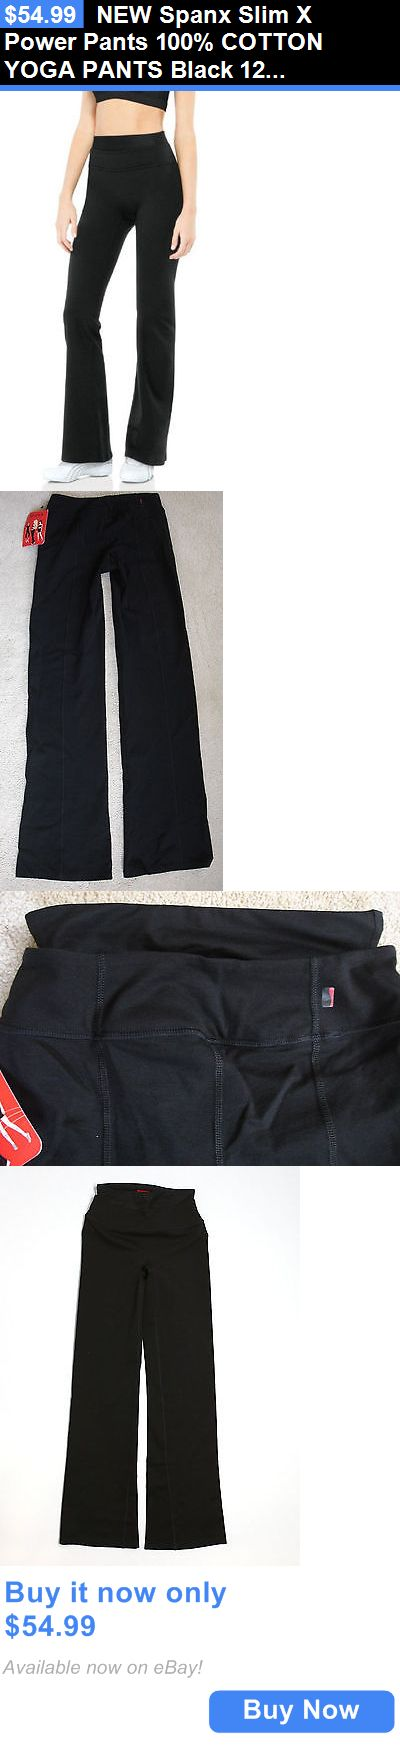 Women Shapewear: New Spanx Slim X Power Pants 100% Cotton Yoga Pants Black 1230 Size S,M,L,Xl BUY IT NOW ONLY: $54.99